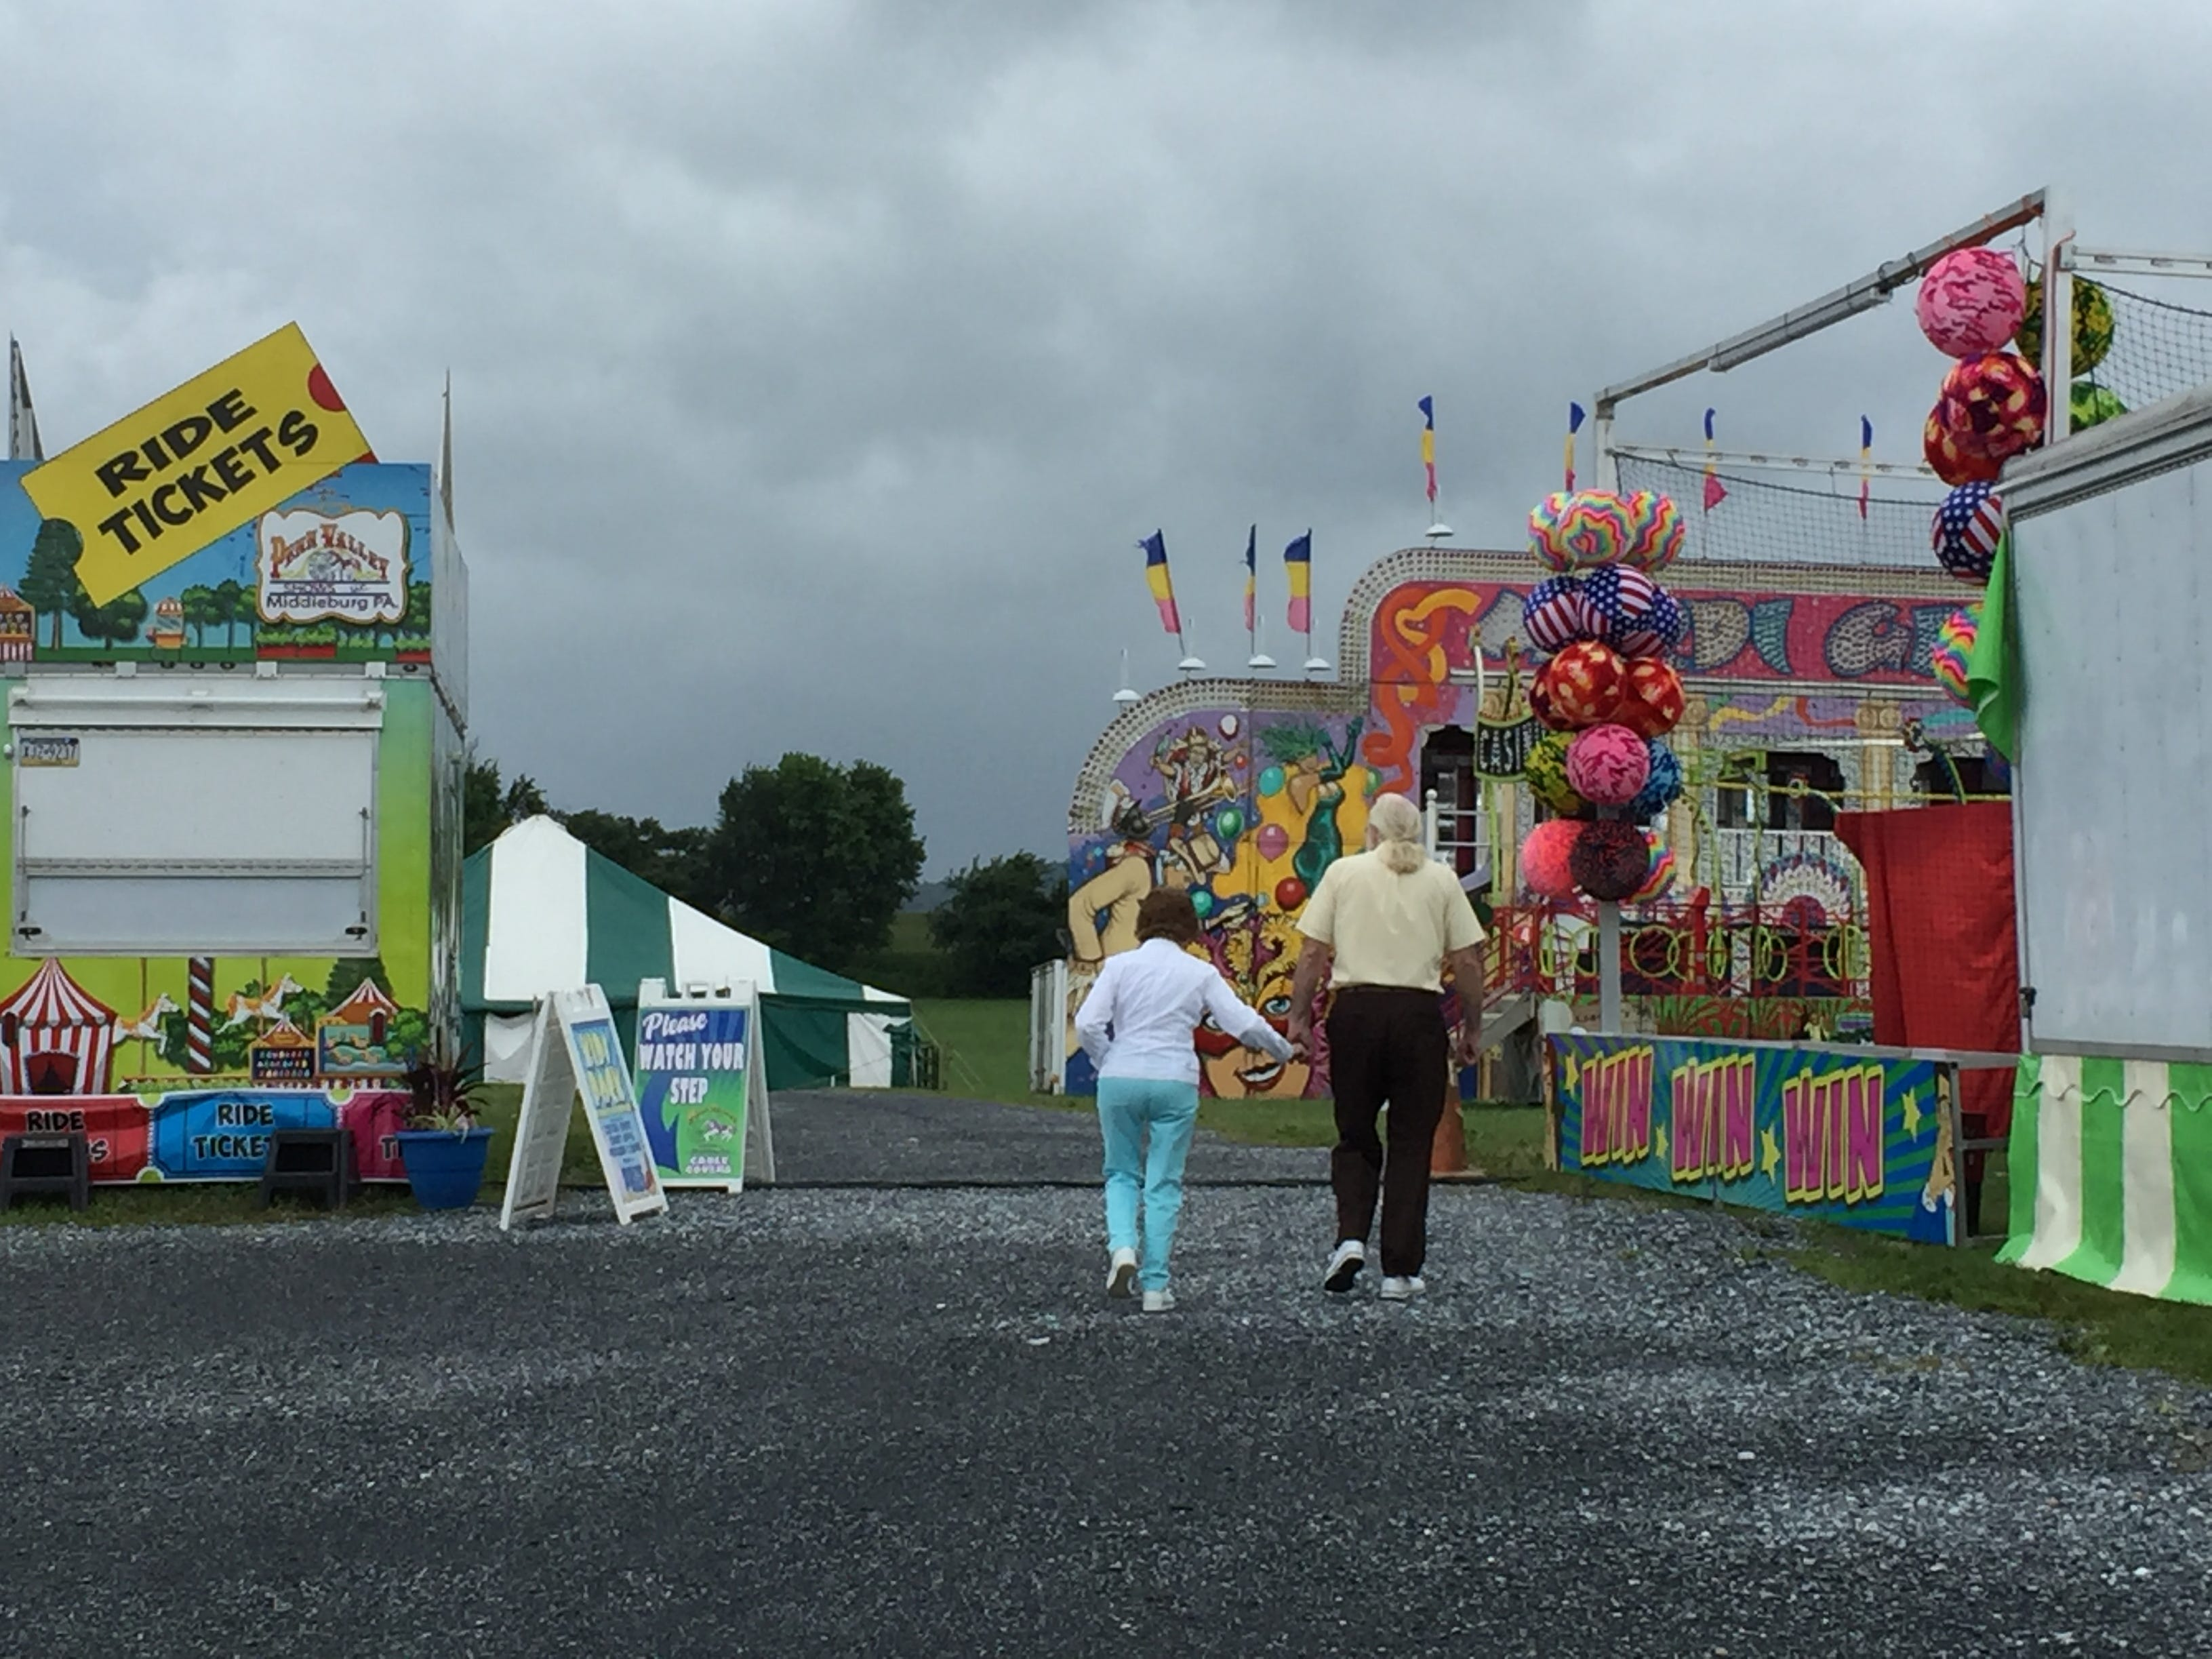 Rain continued to soak the region on Tuesday, but it couldn't dampen everybody's spirits at the Lebanon Area Fair.